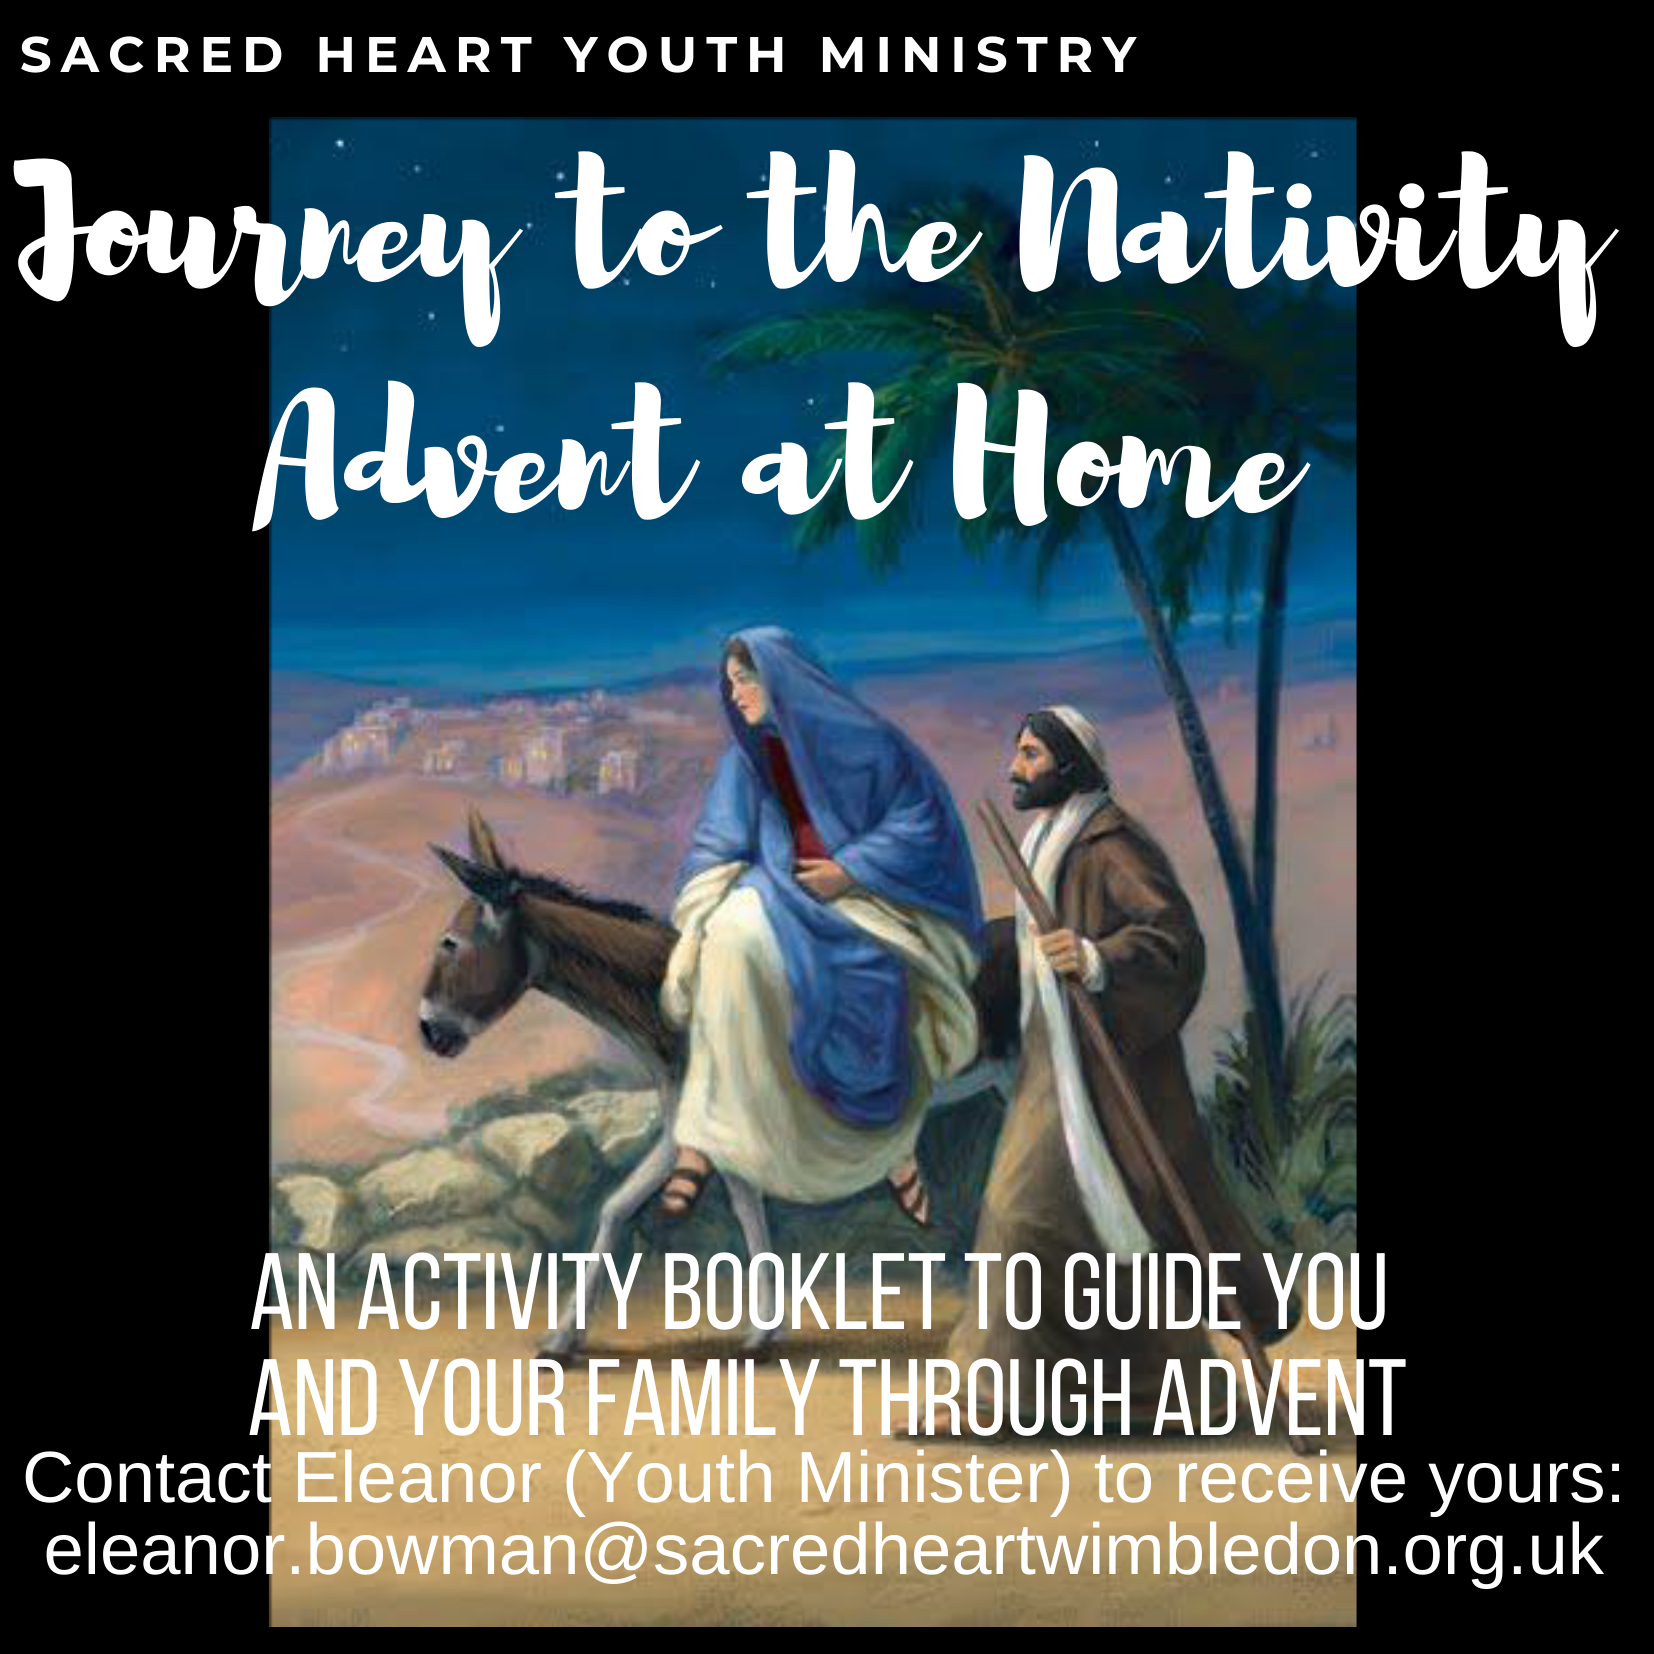 Advent at Home flyer